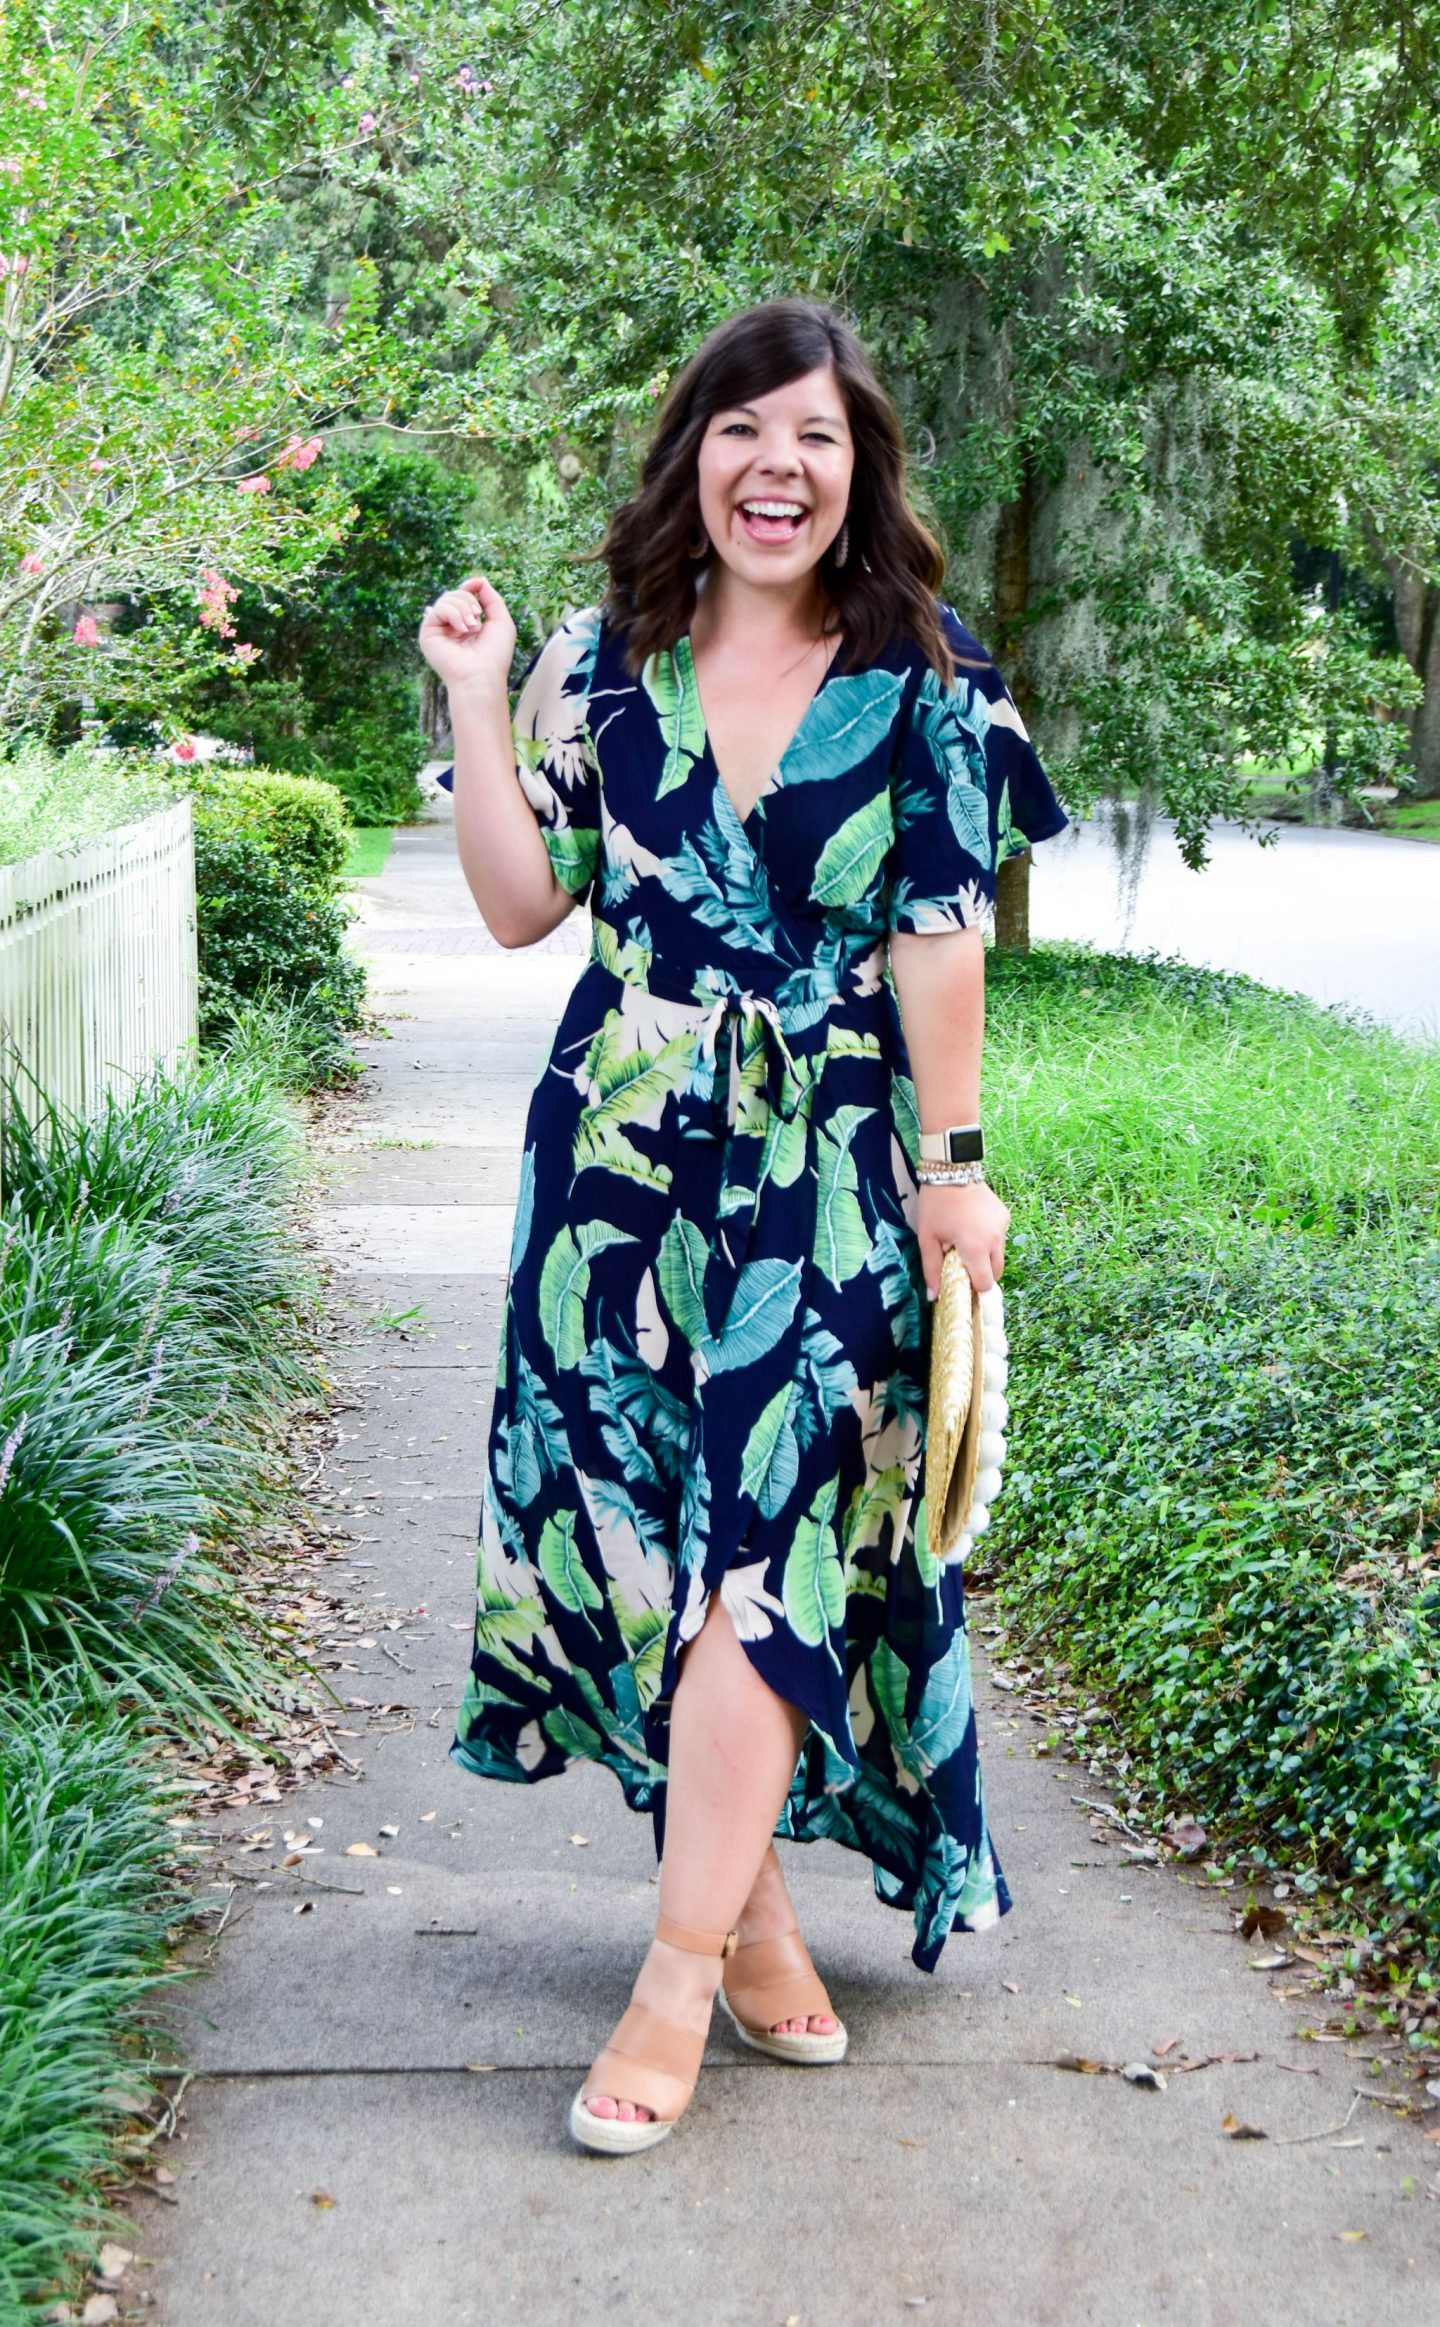 ec3ee8f0ca Palm Print Maxi Dress: c/o SheIn || Must-Have Wedges: Nordstrom || Clutch:  Nordstrom (sold out, similar) || Apple Watch with this band